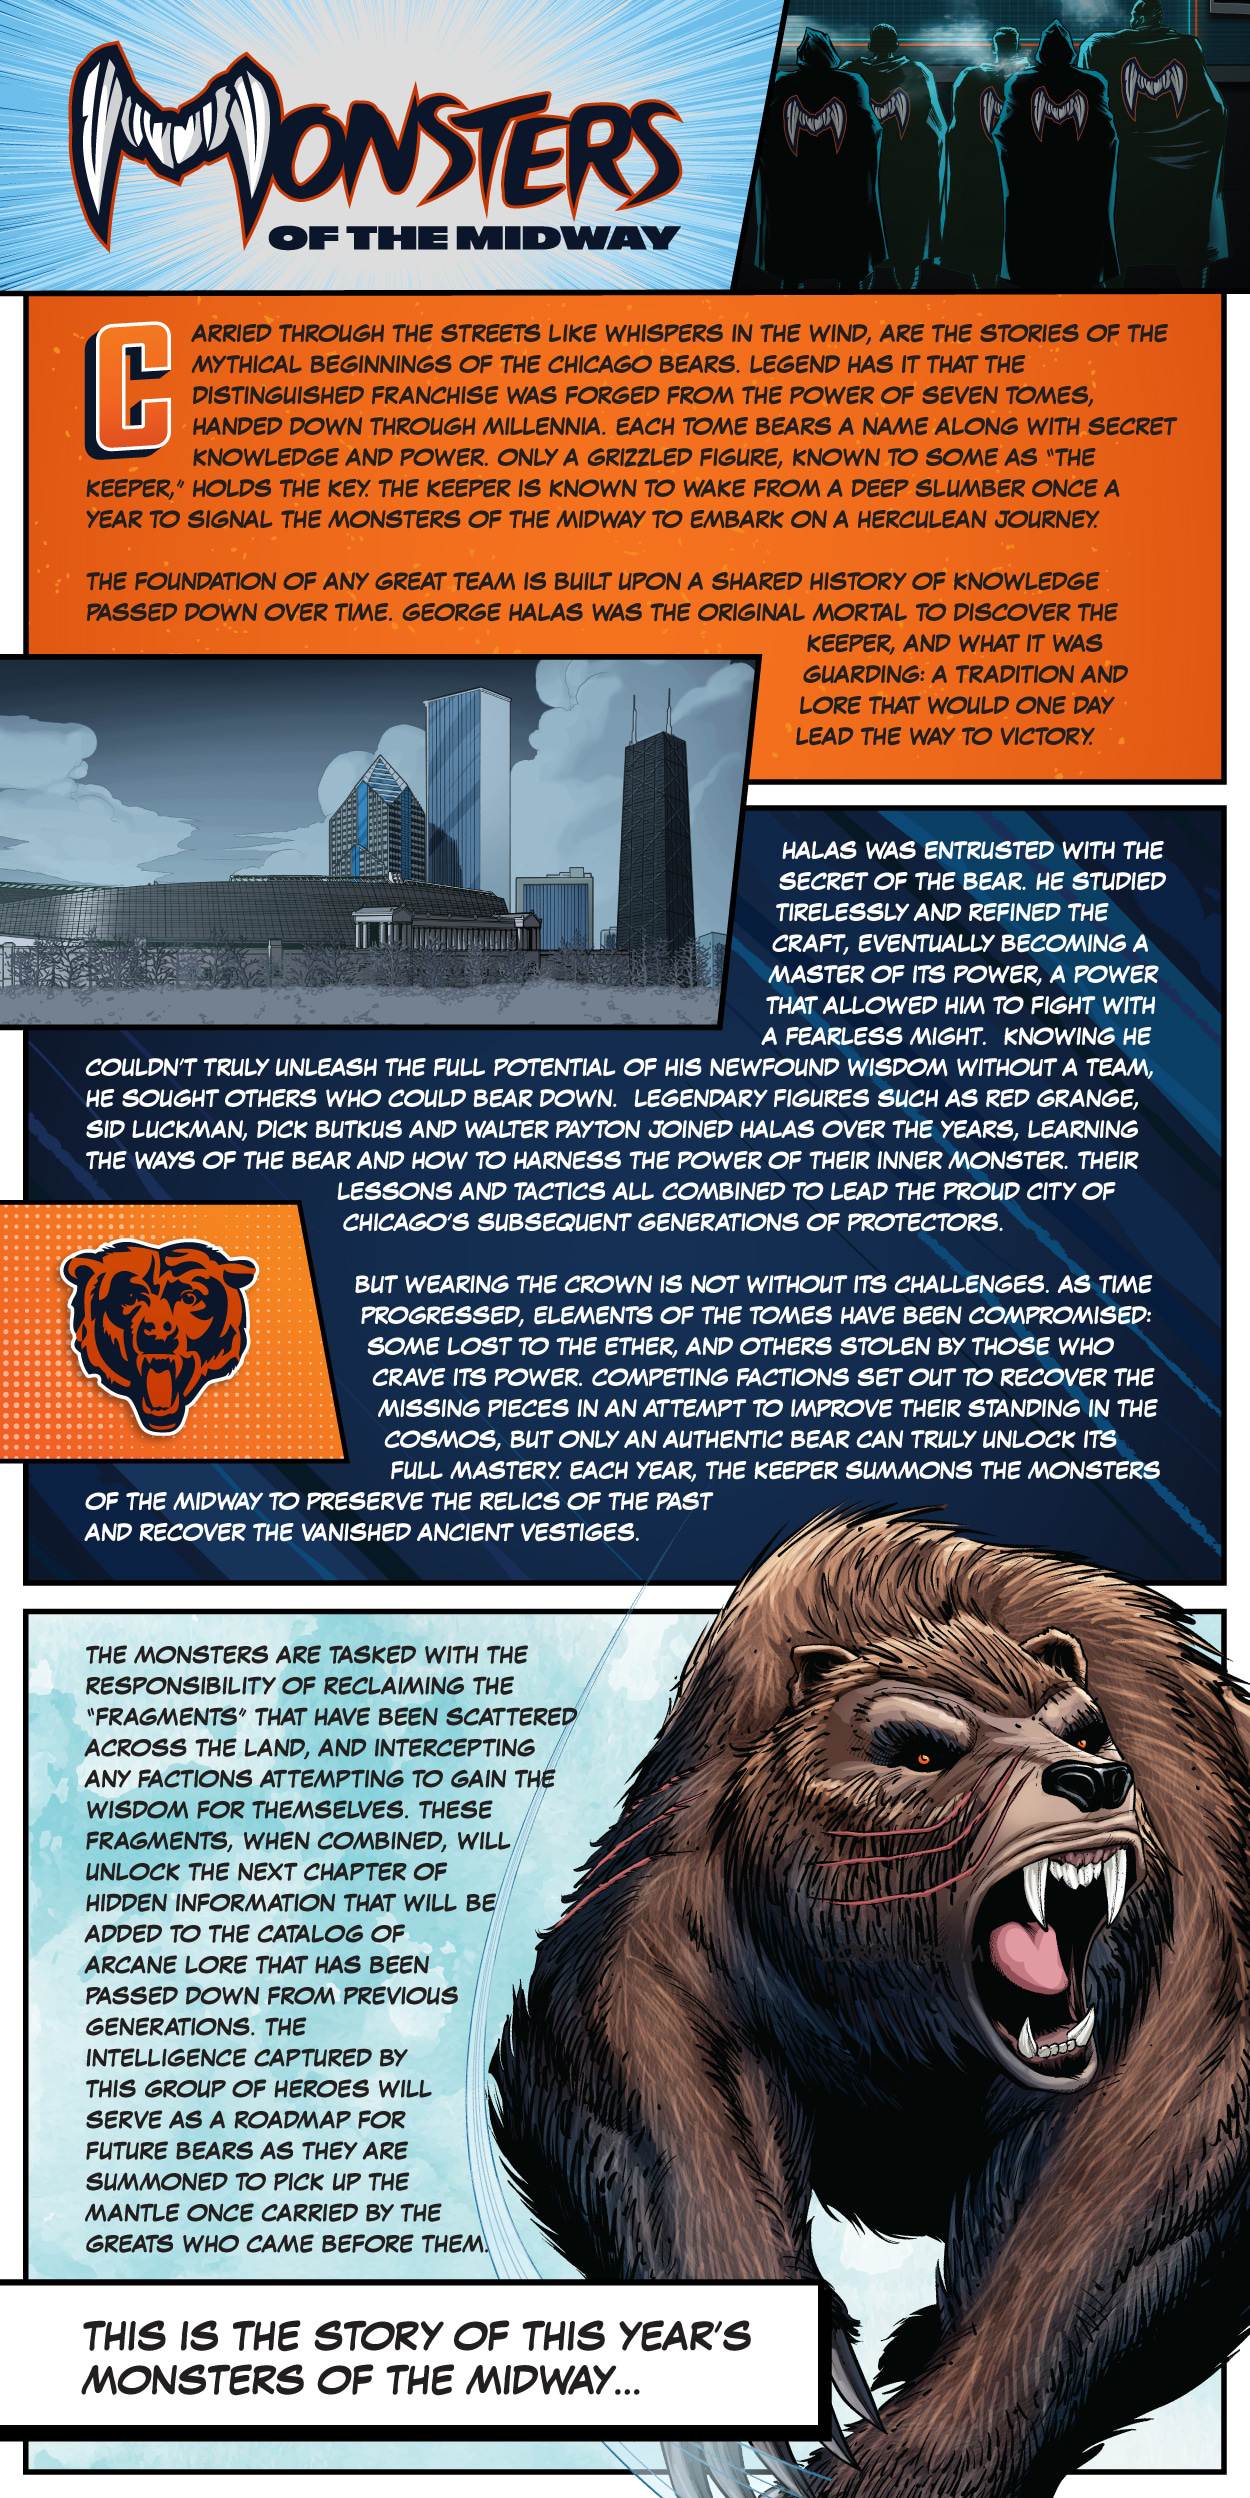 49bdec61 Monsters of the Midway 2018 | Chicago Bears Official Website